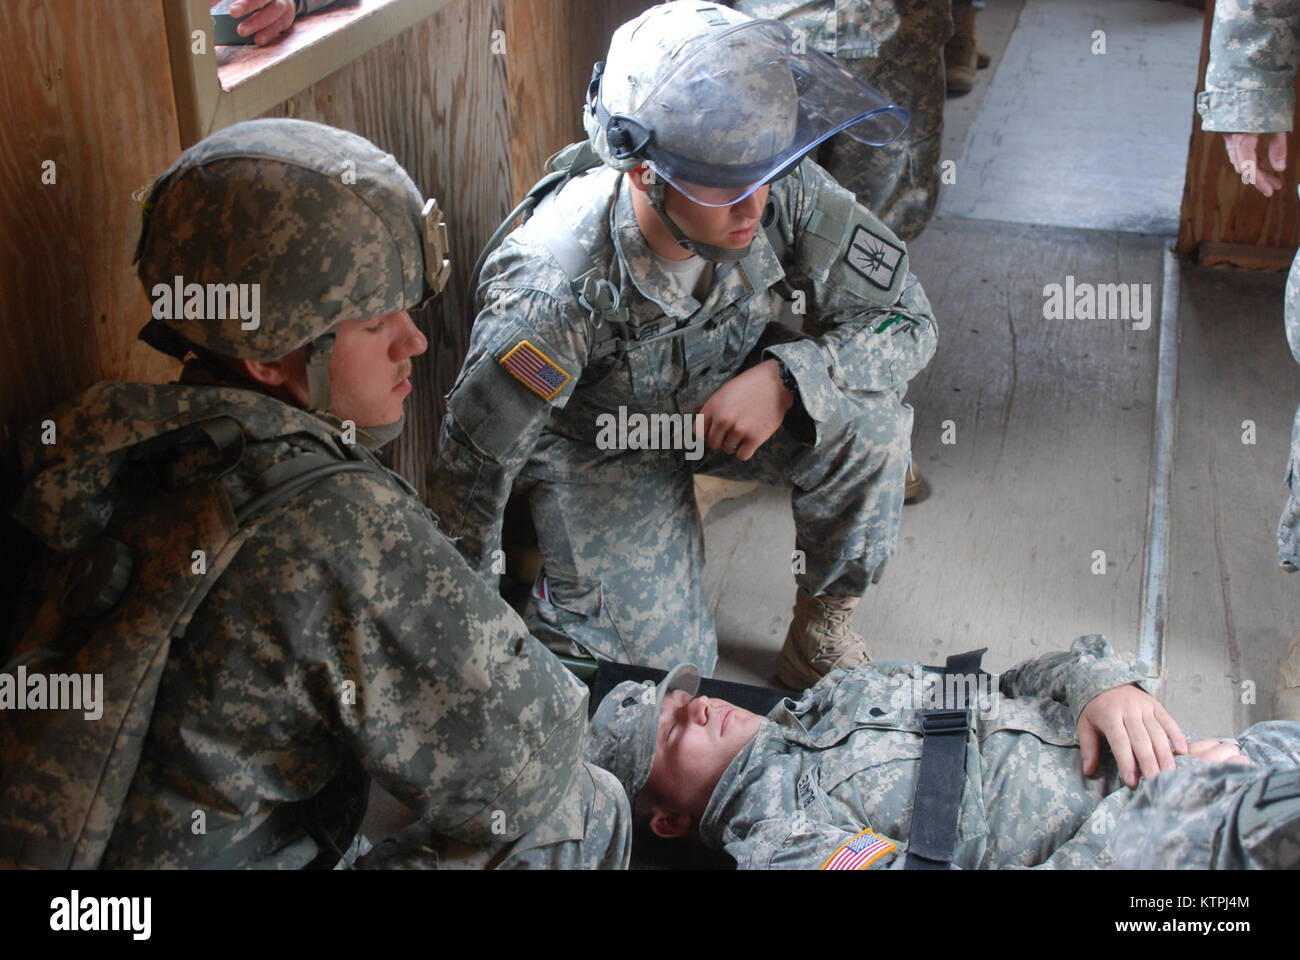 Soldiers from the 102nd Military Police Battalion, Headquarters Detachment from Auburn, conduct detainee operations Stock Photo